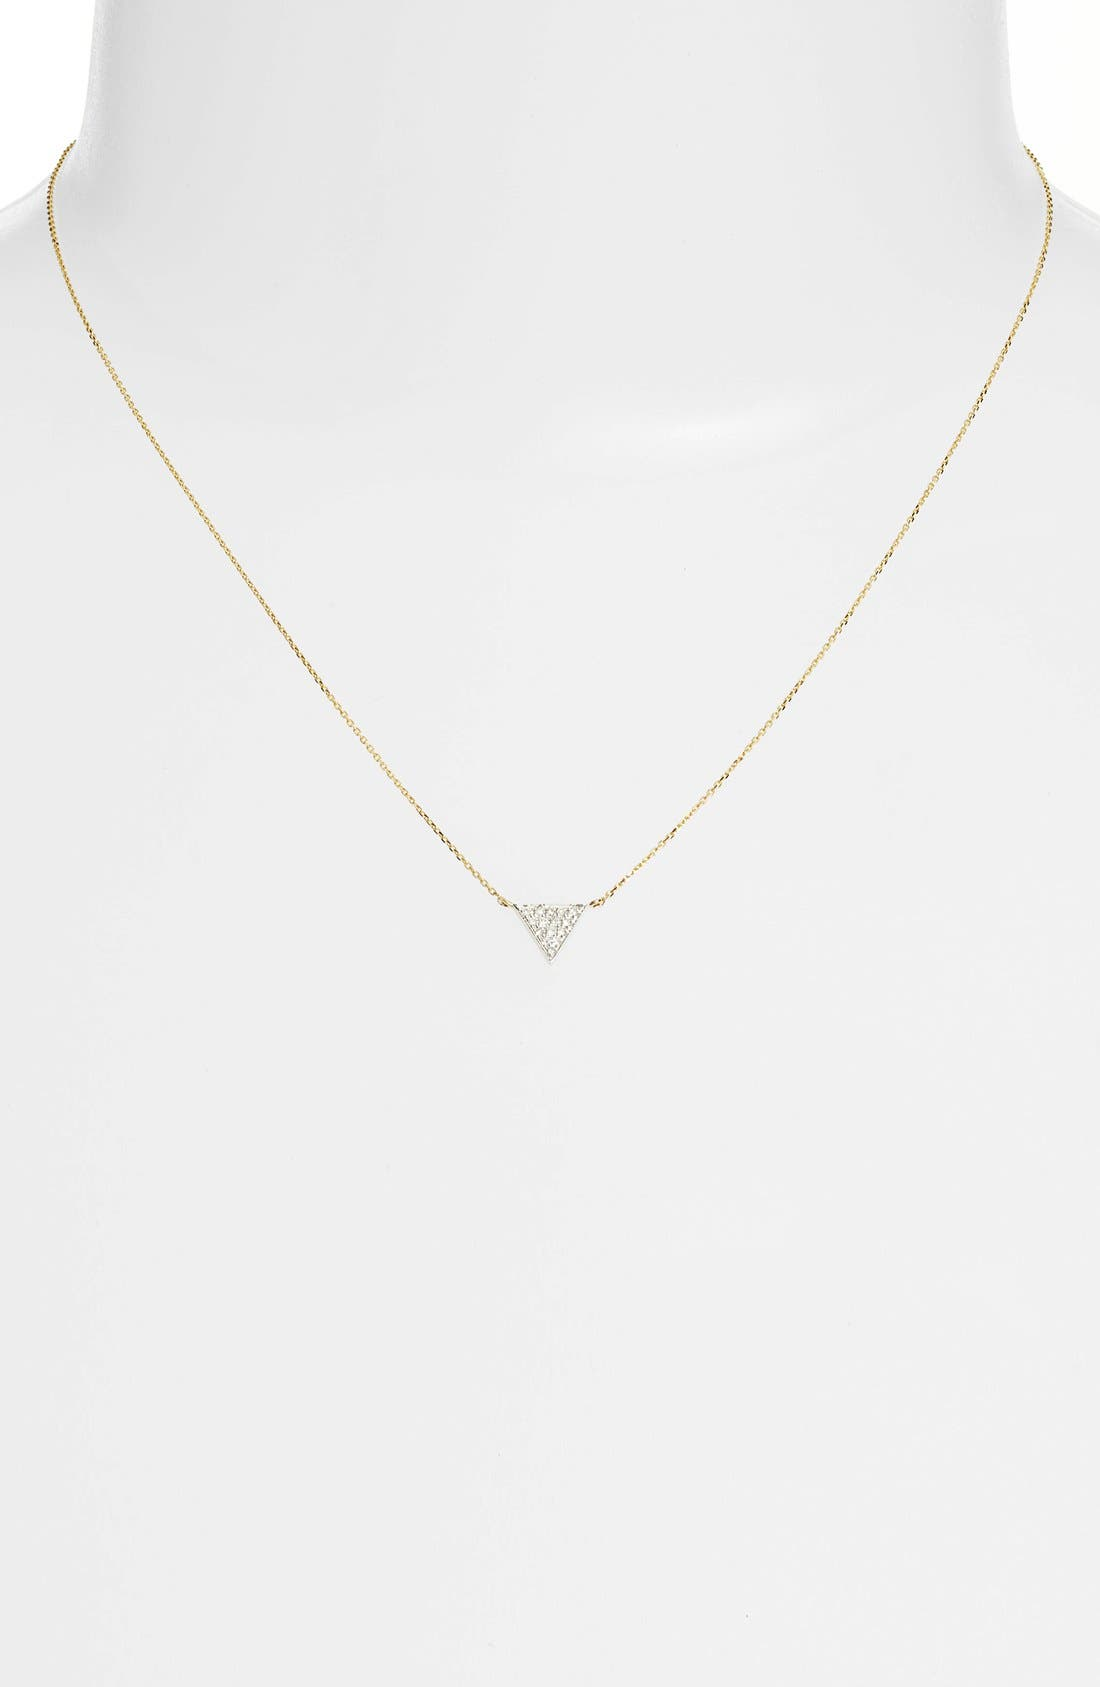 'Emily Sarah' Diamond Triangle Pendant Necklace,                             Alternate thumbnail 6, color,                             YELLOW GOLD